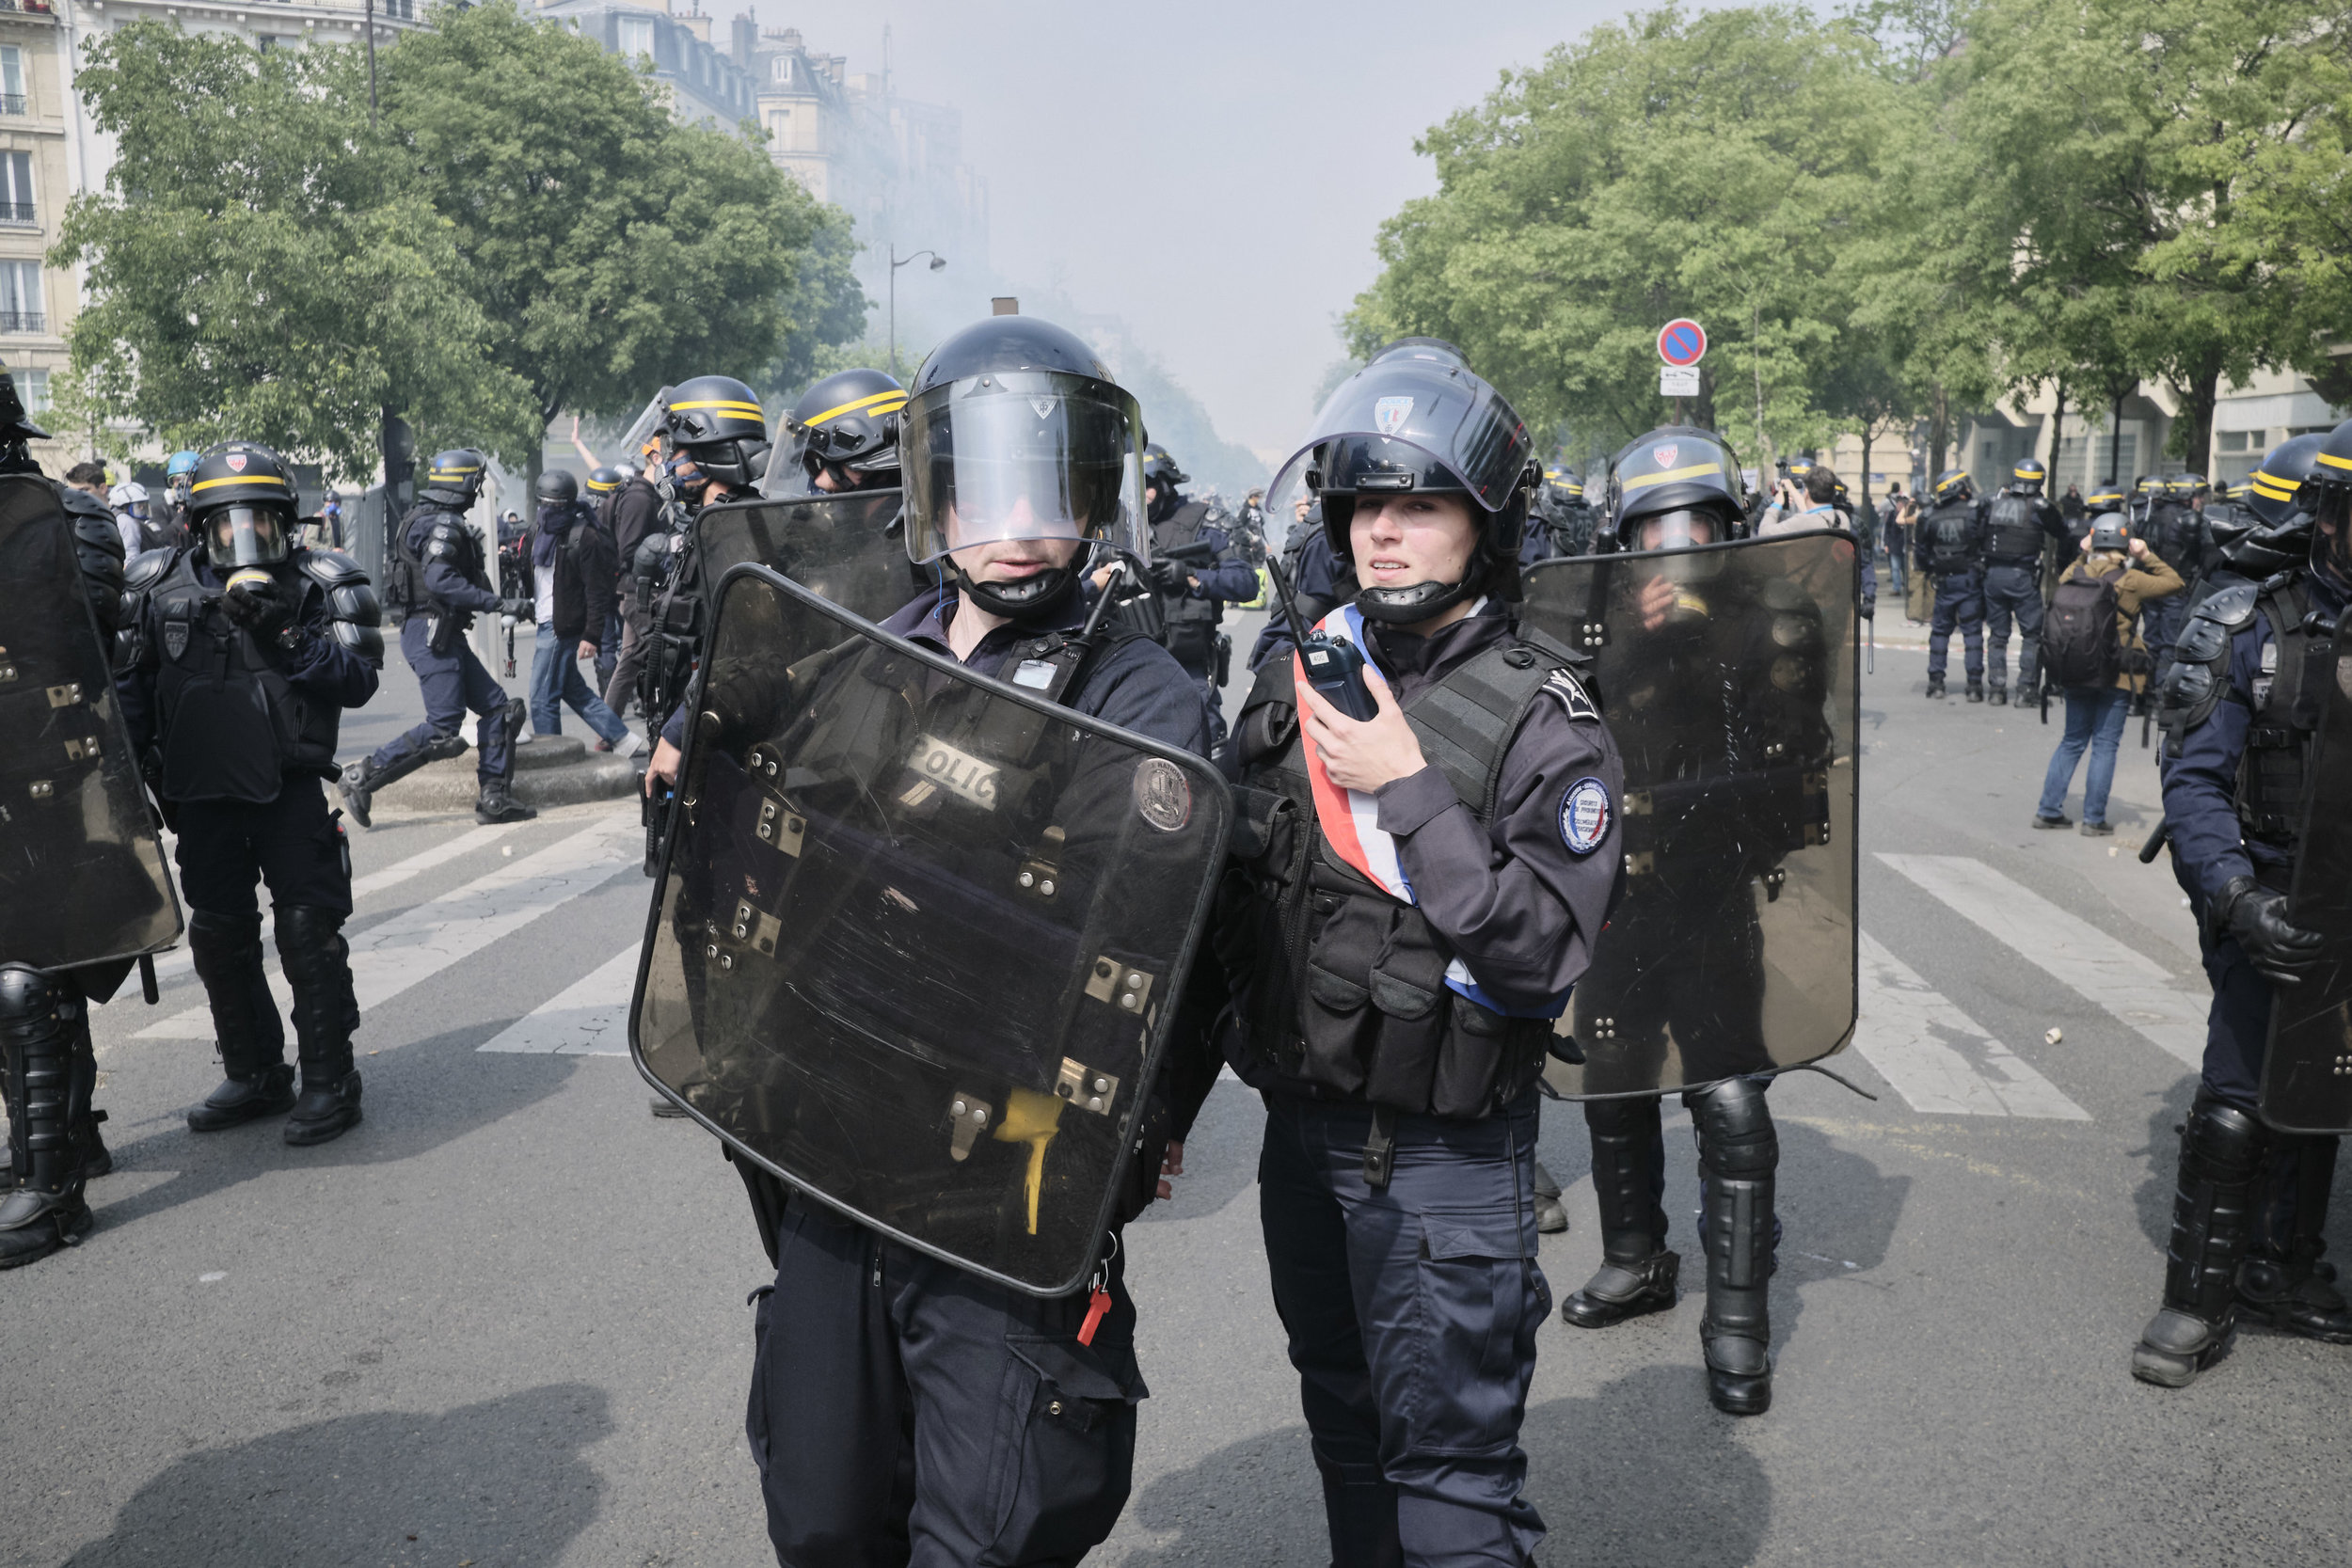 Officers discussing their plans to divert the protests and control the crowds during the march to The Place D'italie.